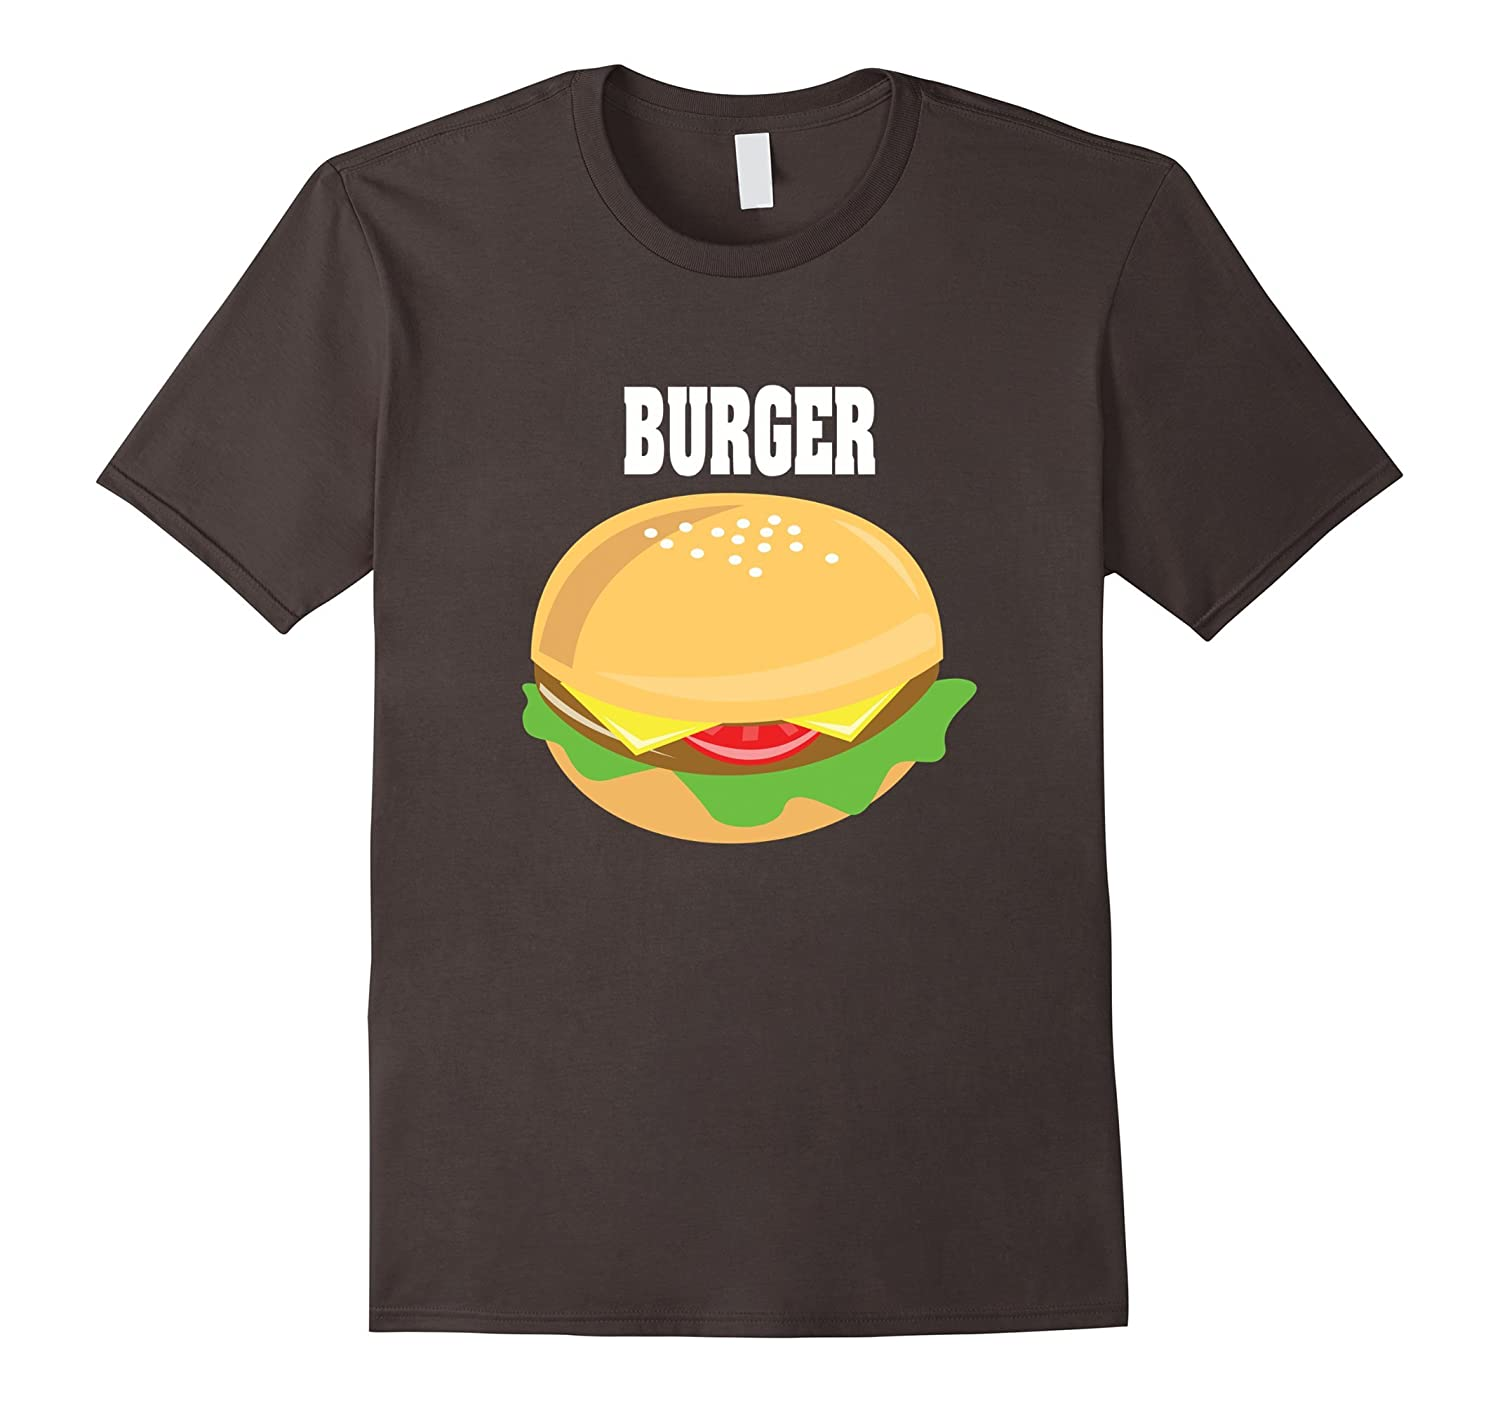 Cheeseburger Couples Halloween Costume Shirt Burger & Fries